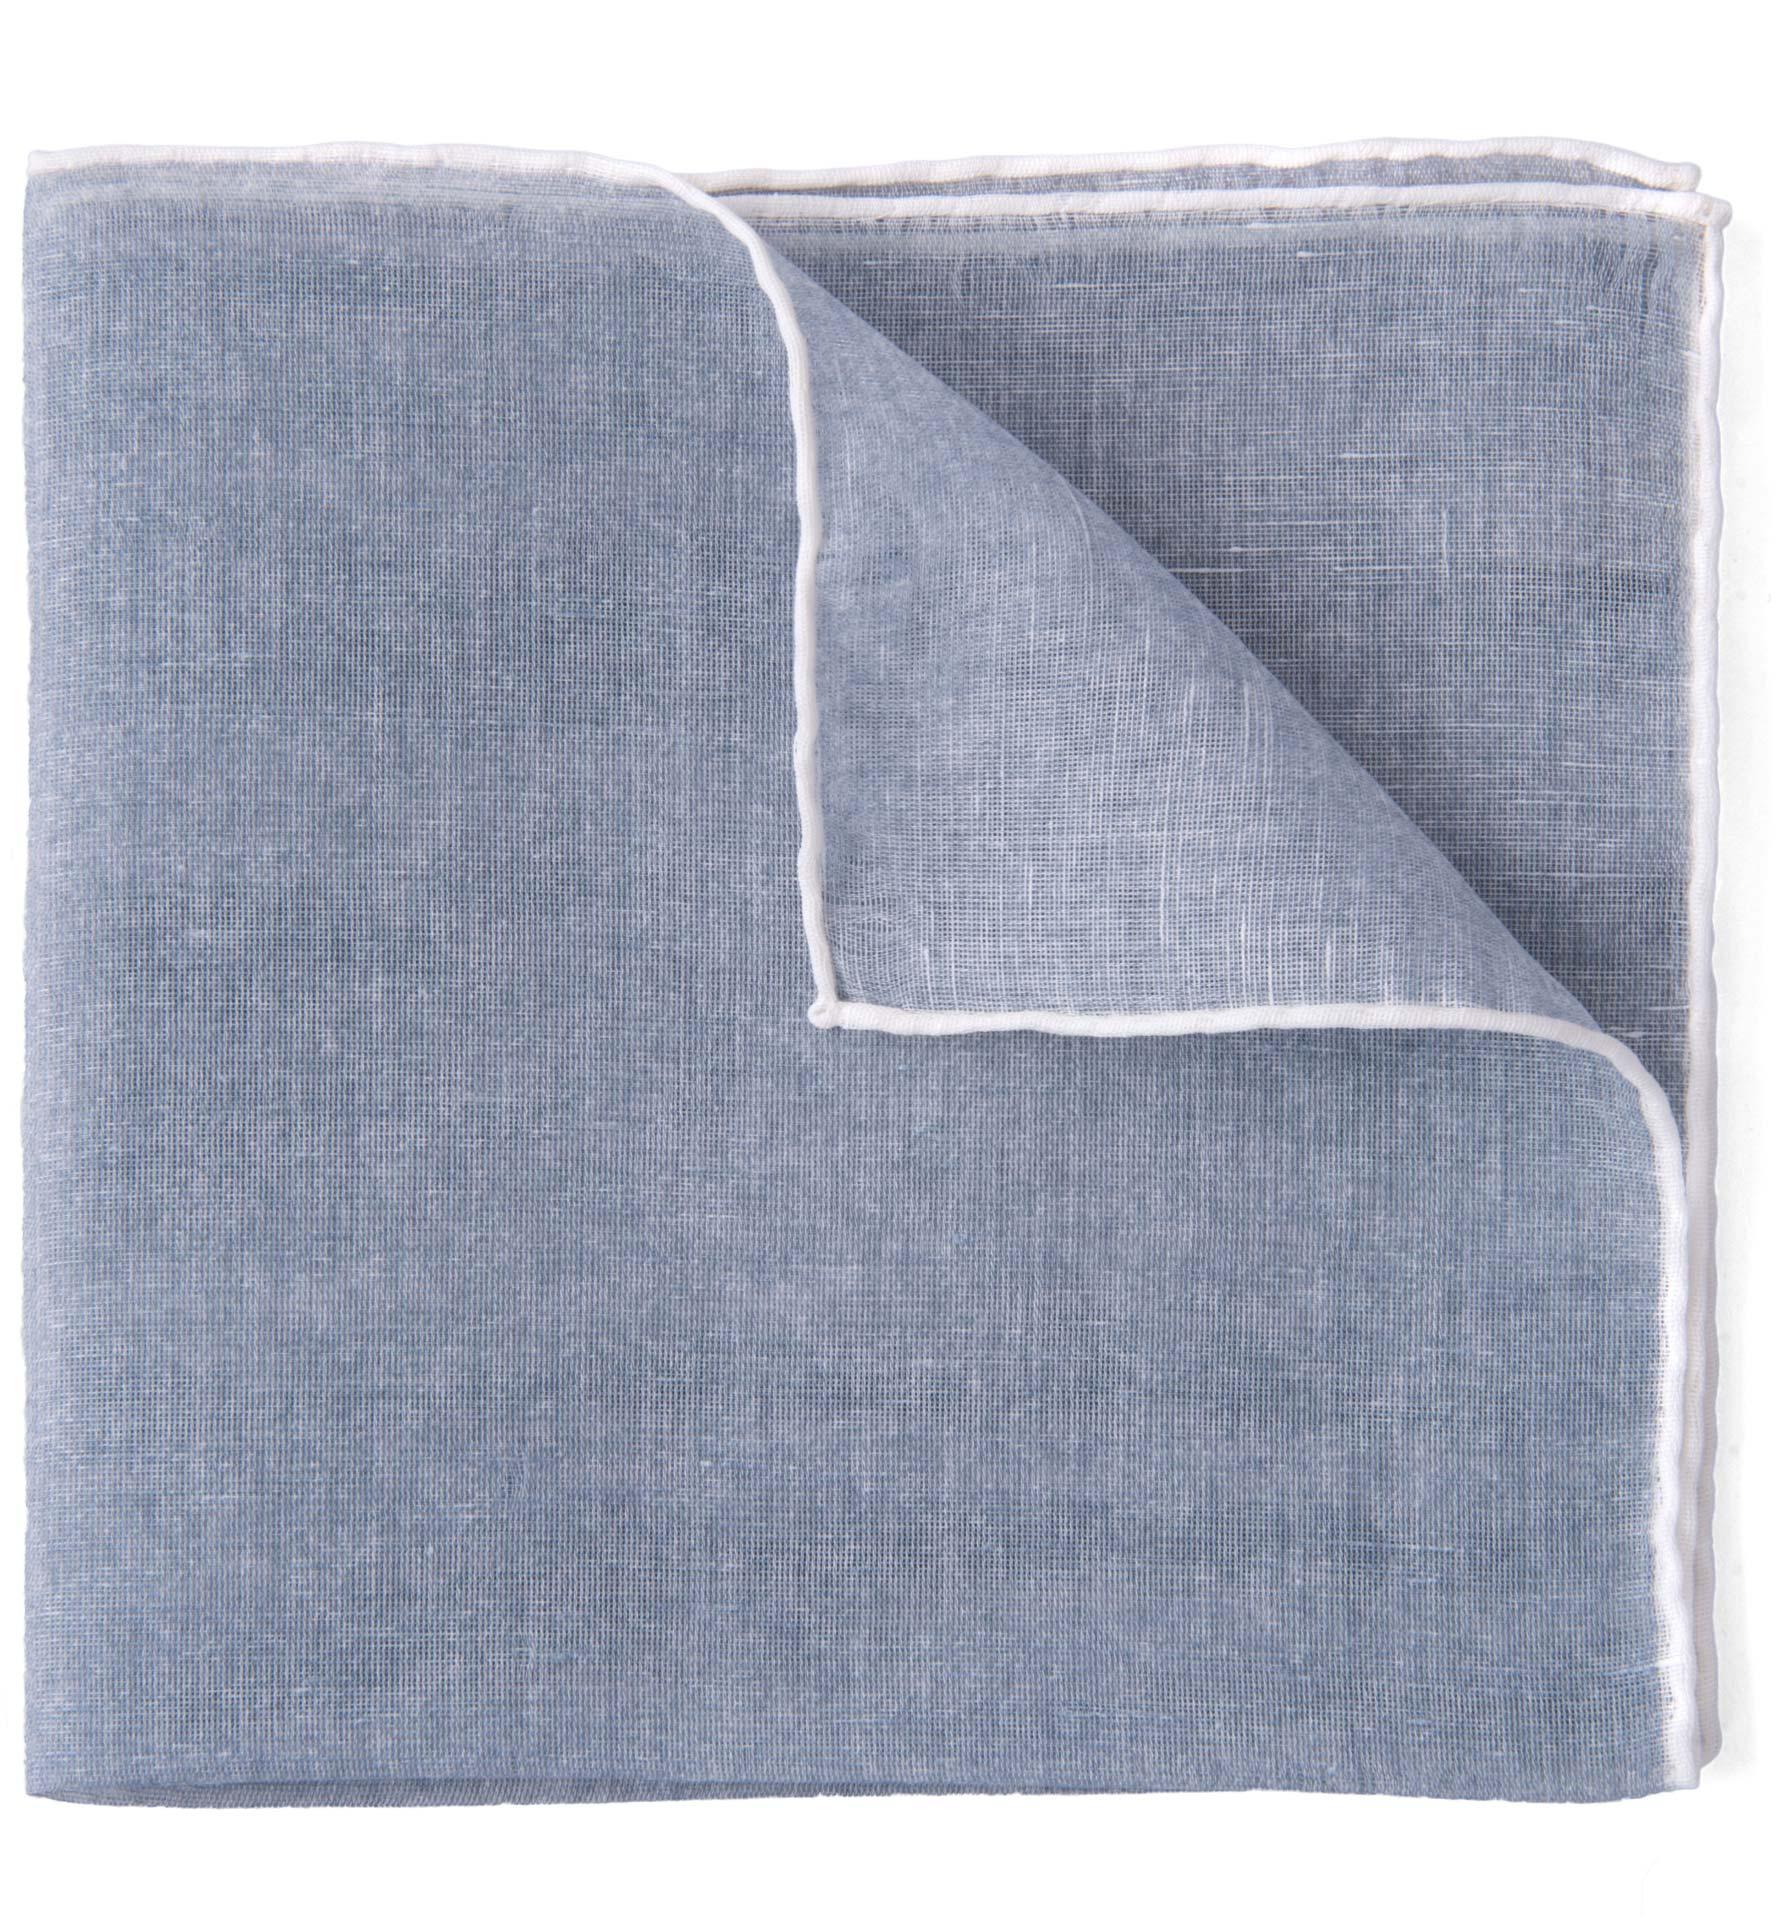 Zoom Image of Grey and White Cotton Linen Pocket Square